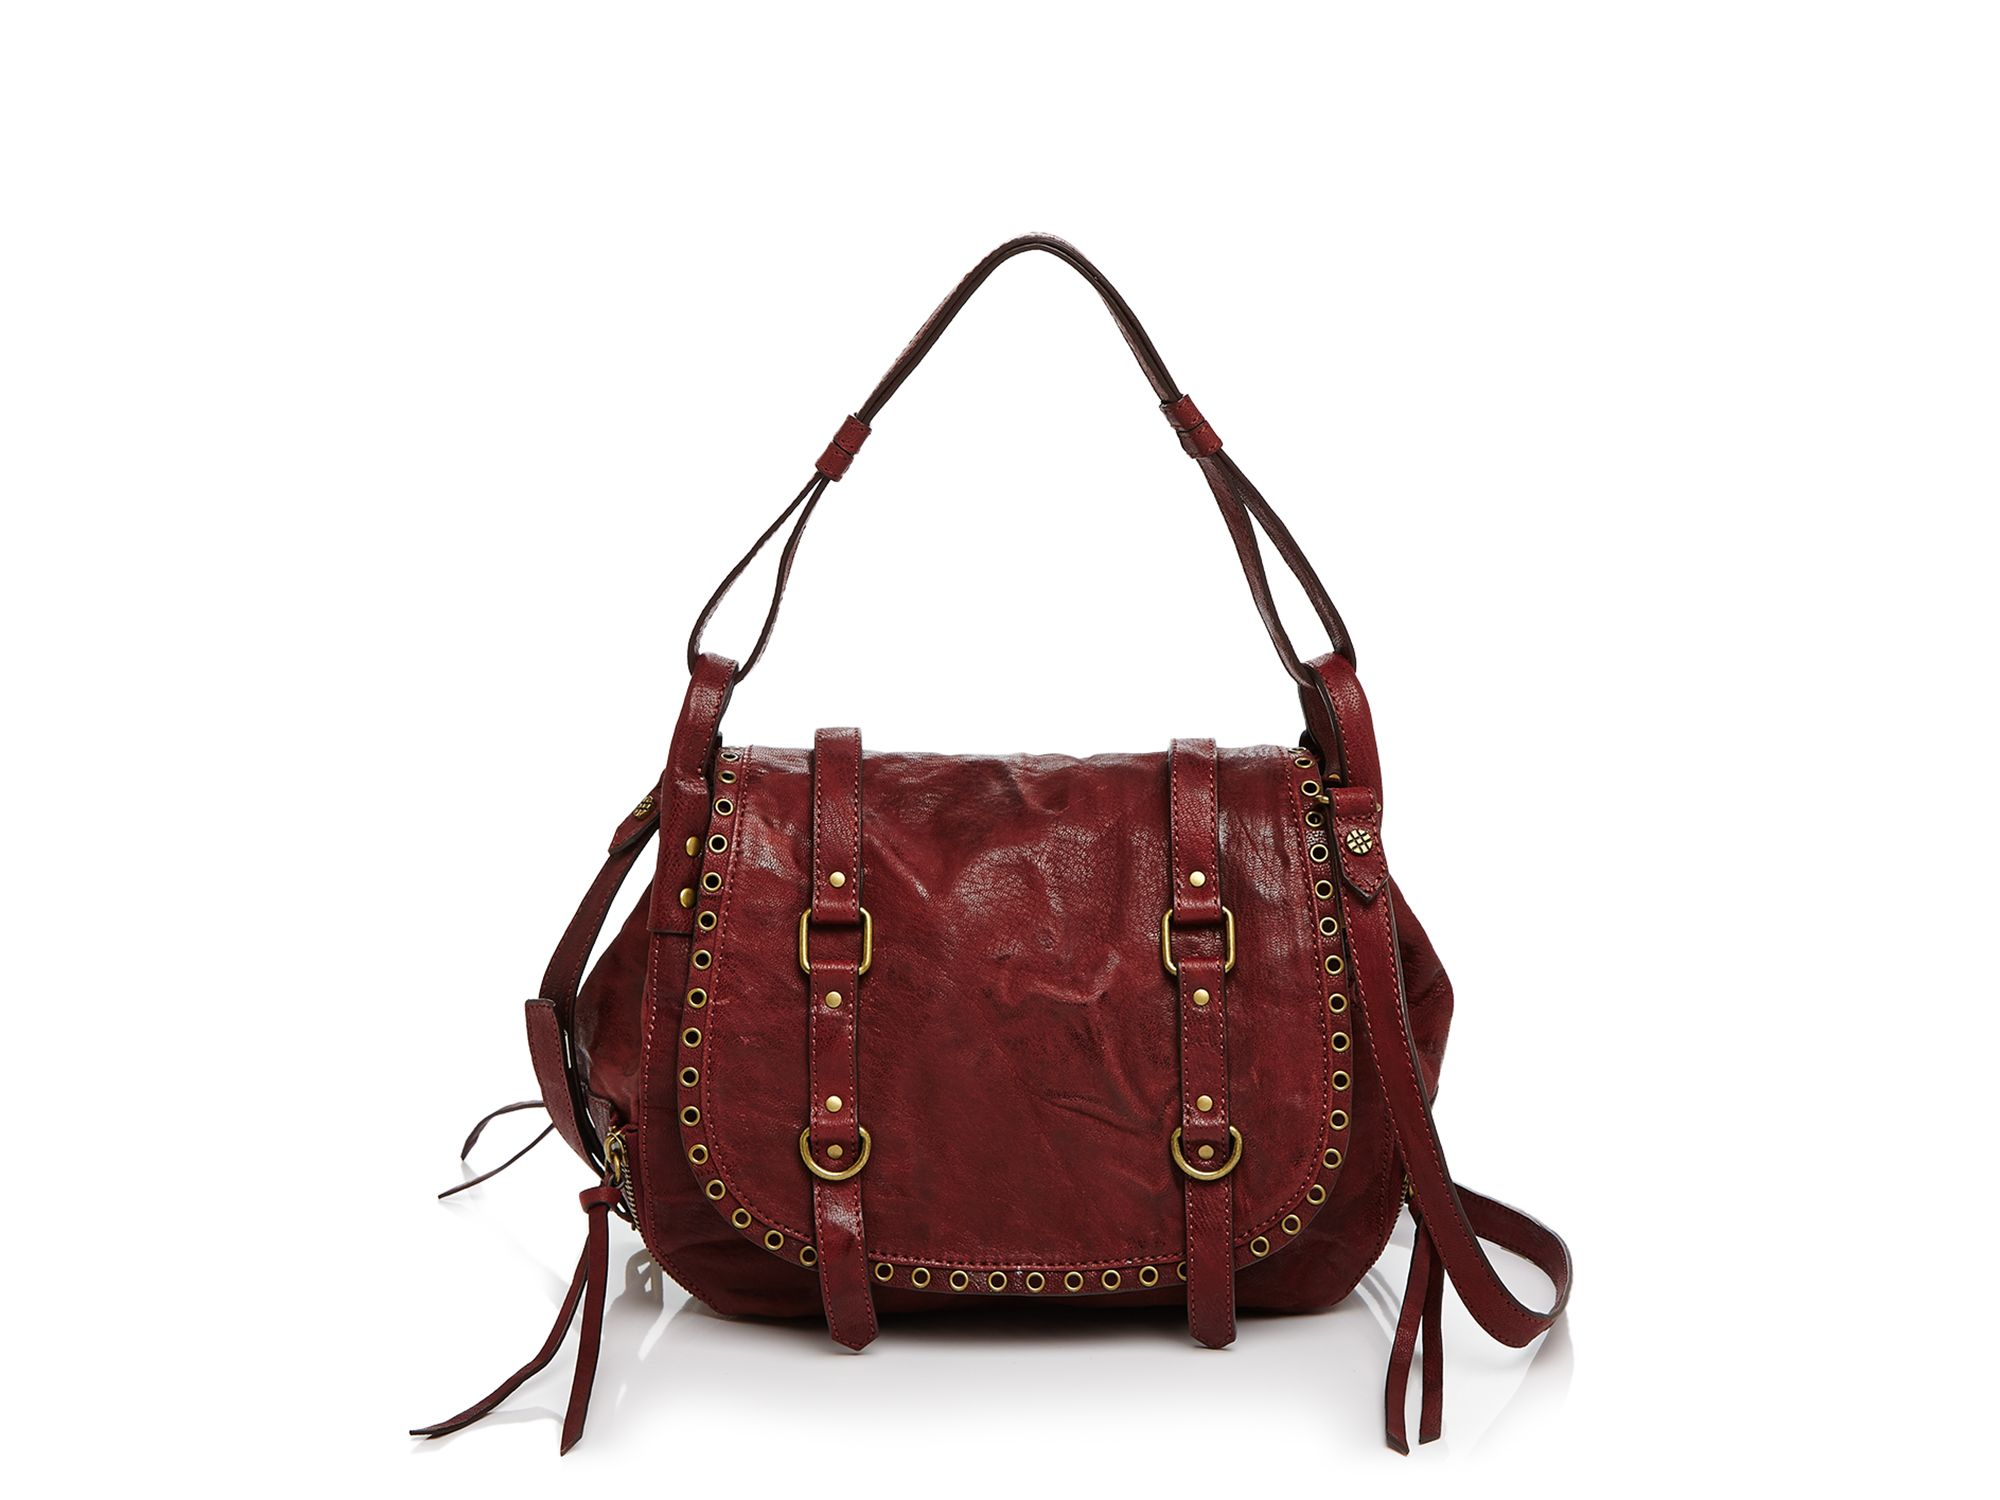 Forum on this topic: Treesje Has a New Bag Line and , treesje-has-a-new-bag-line-and/